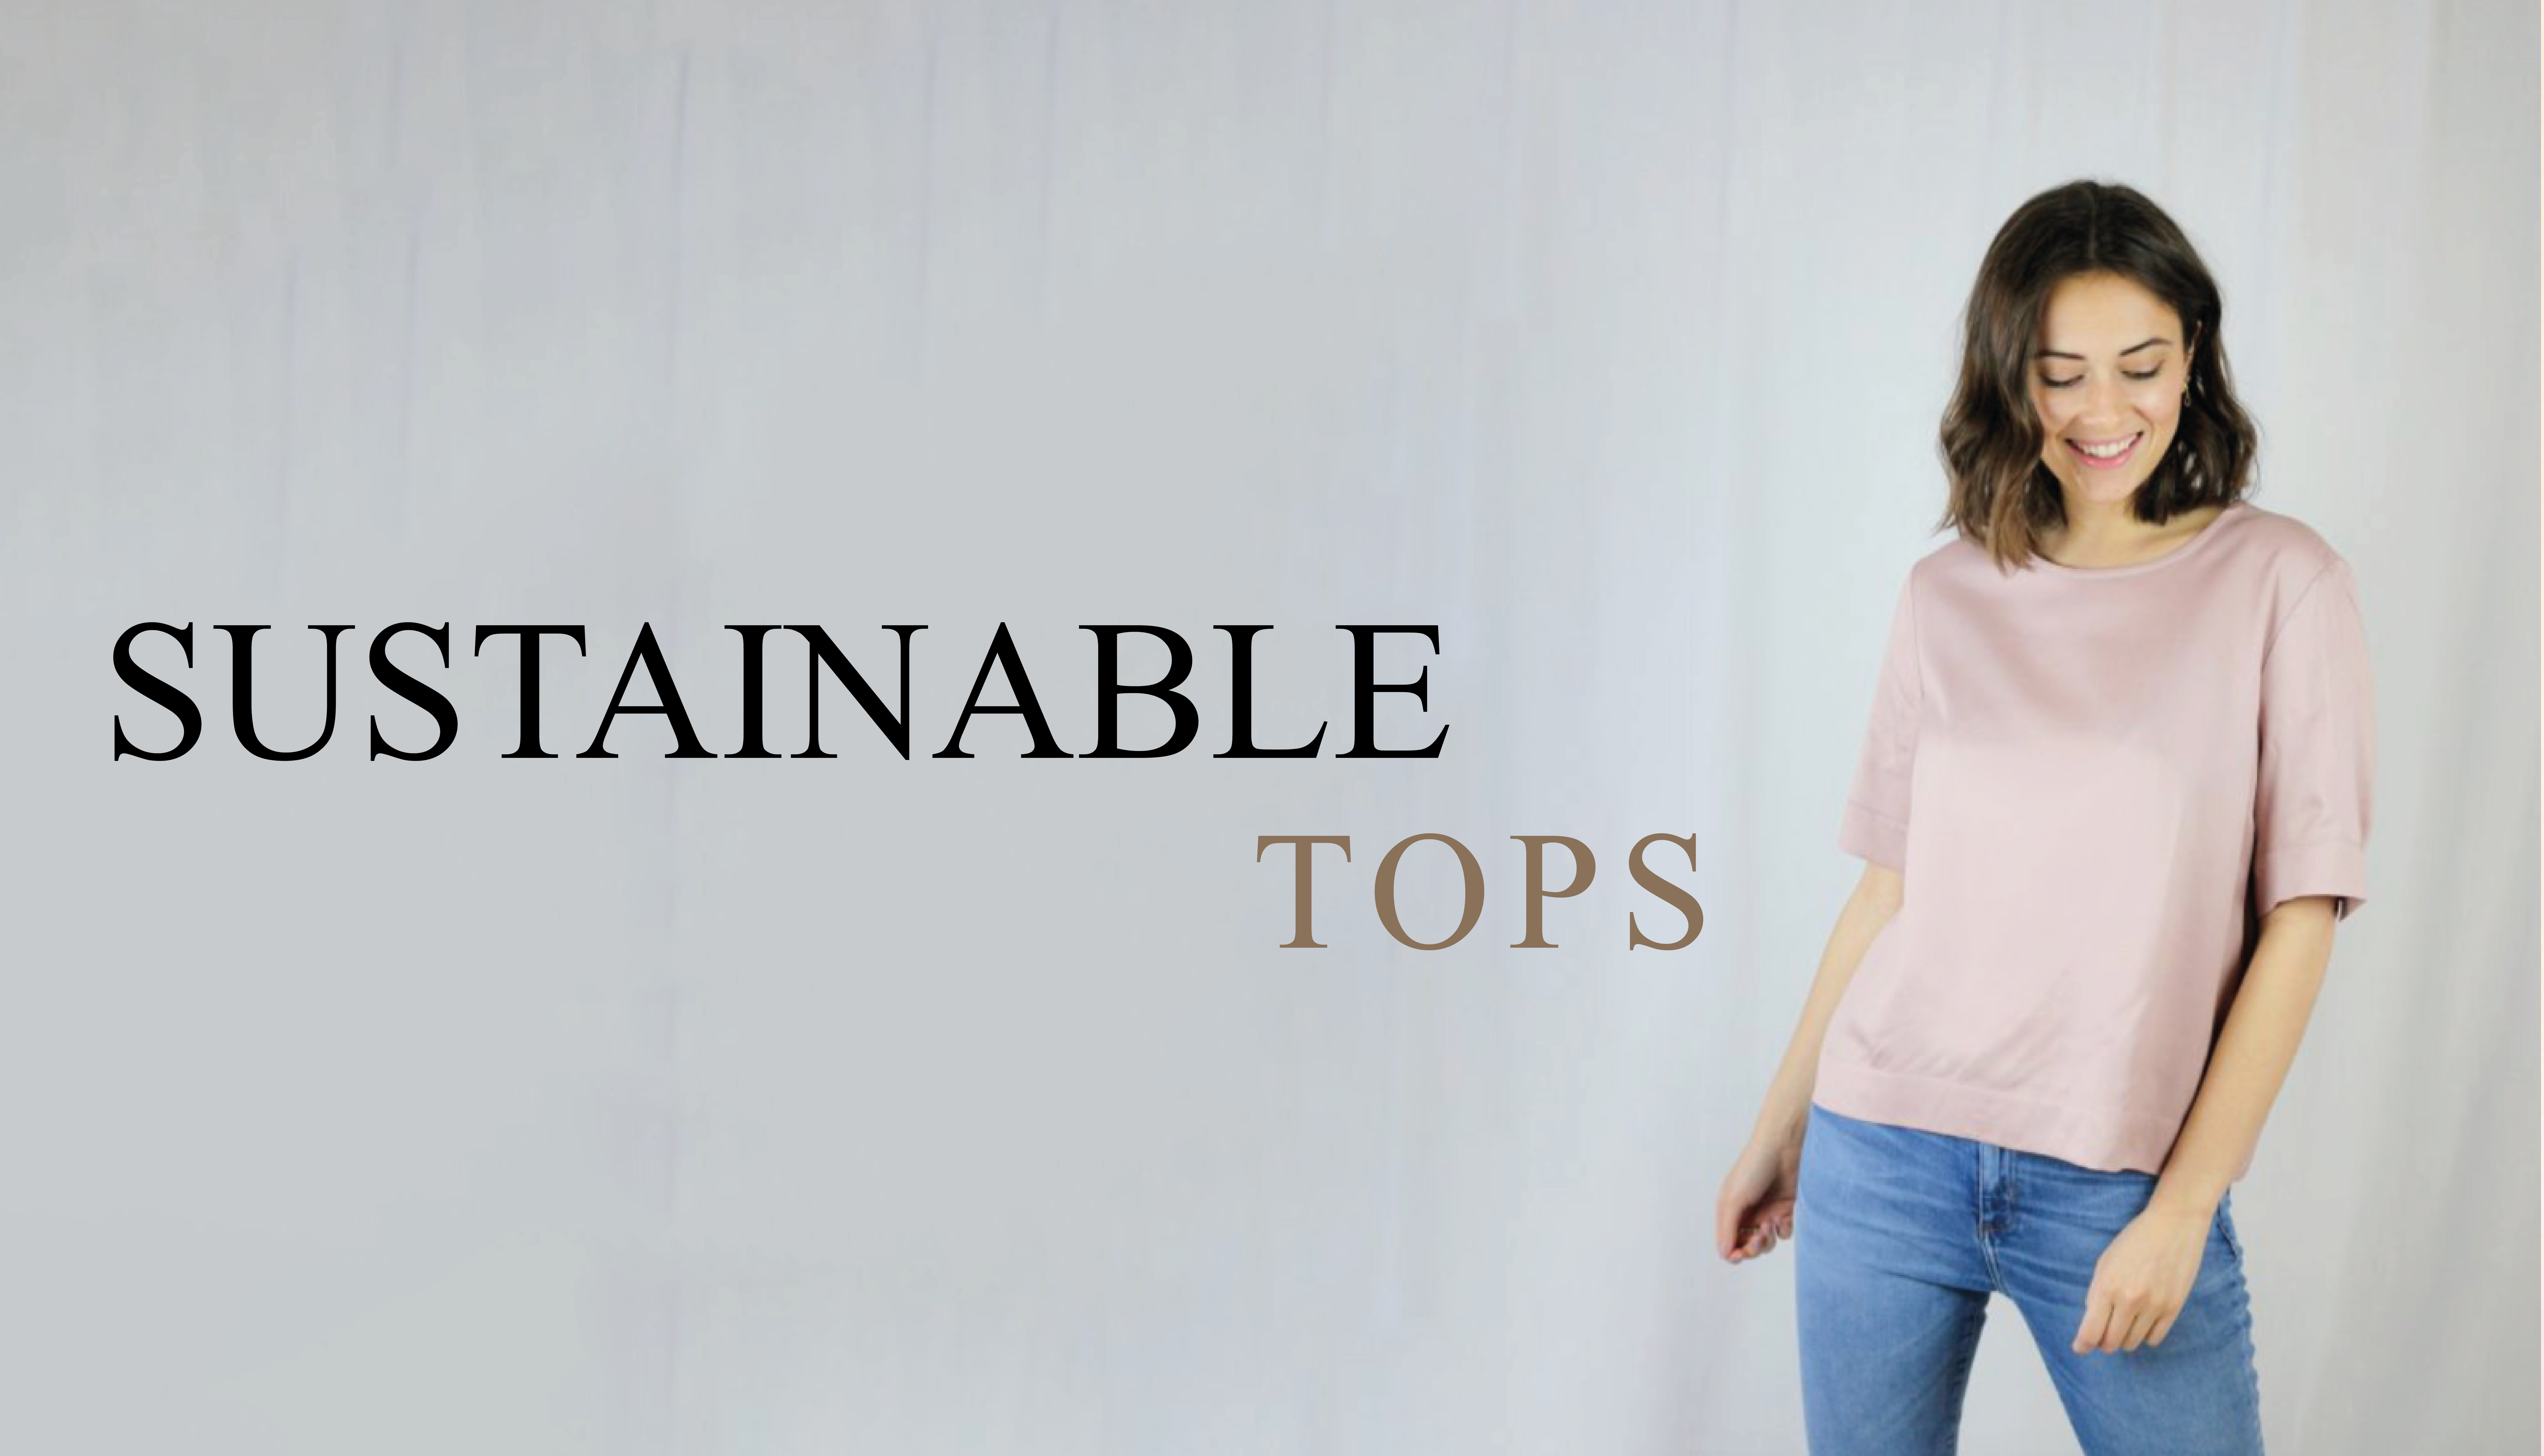 SUSTAINABLE TOPS